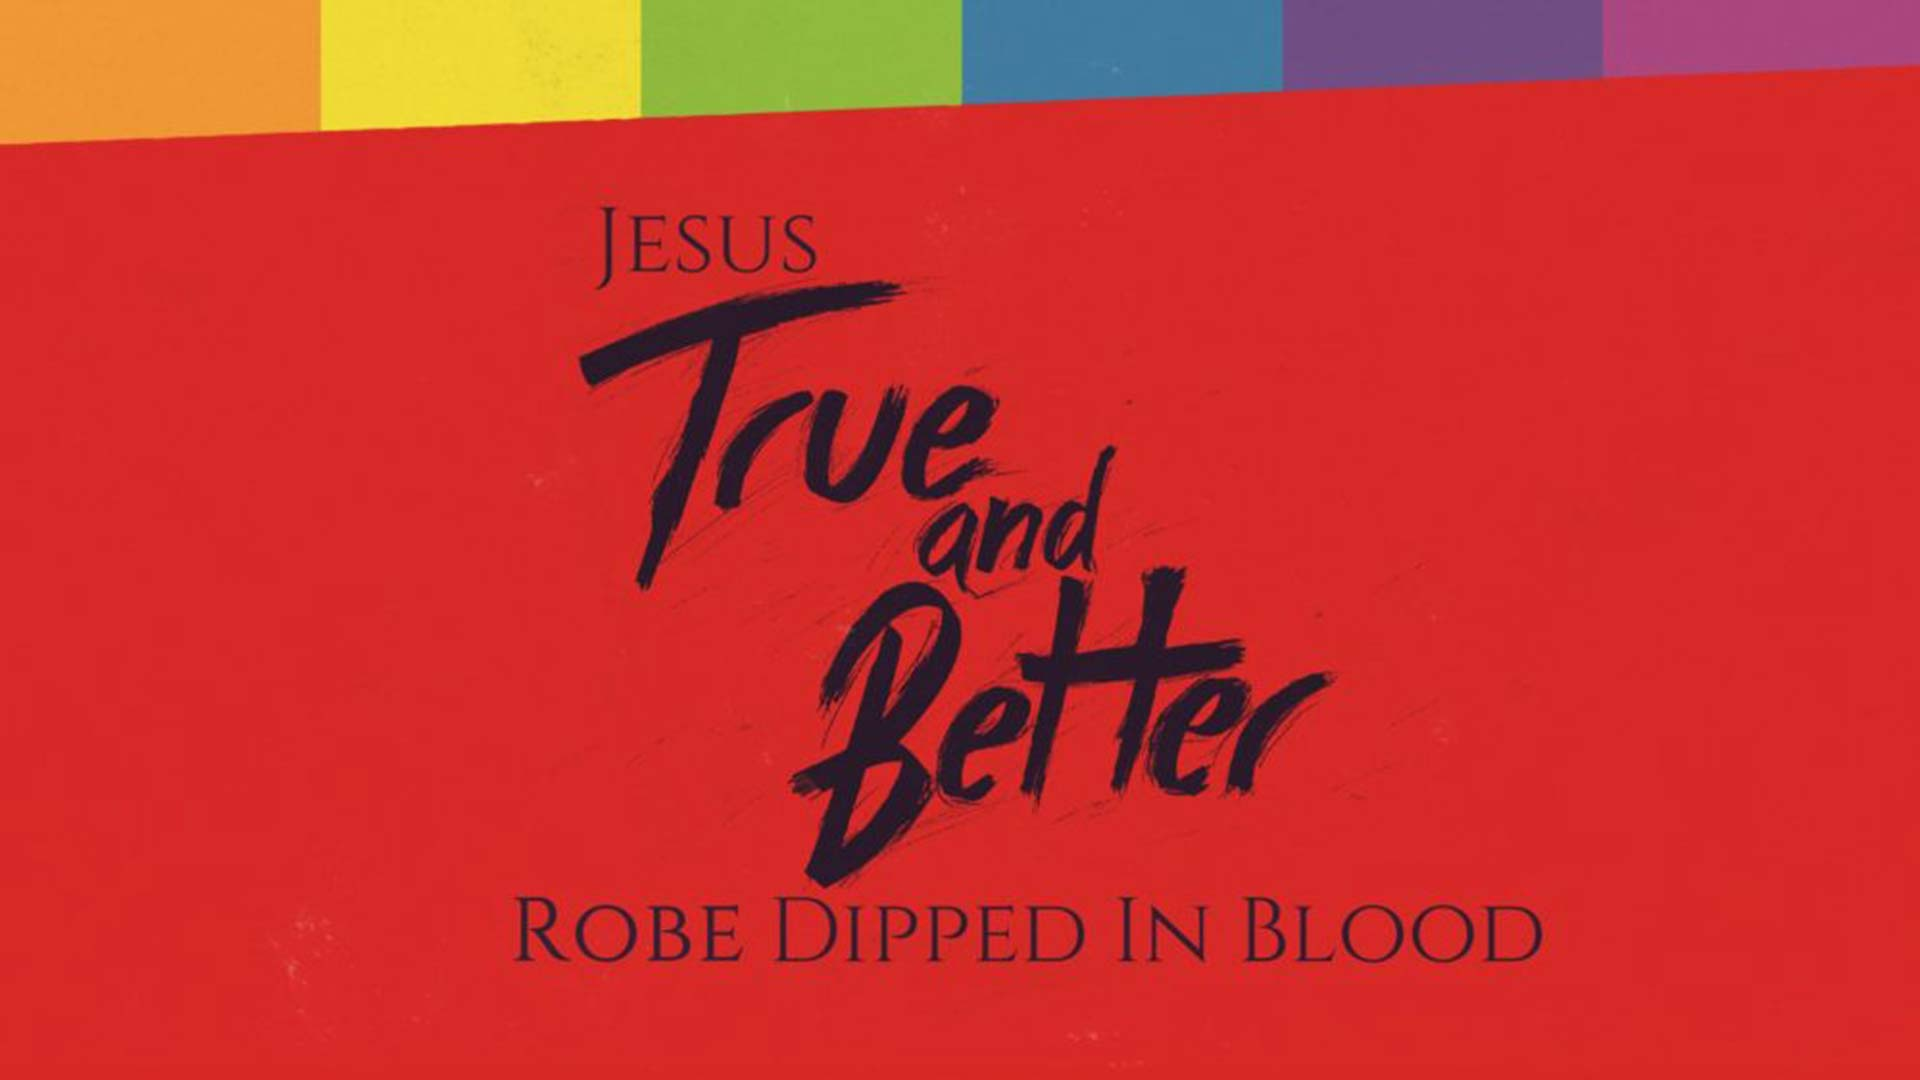 Jesus: True and Better Savior Image